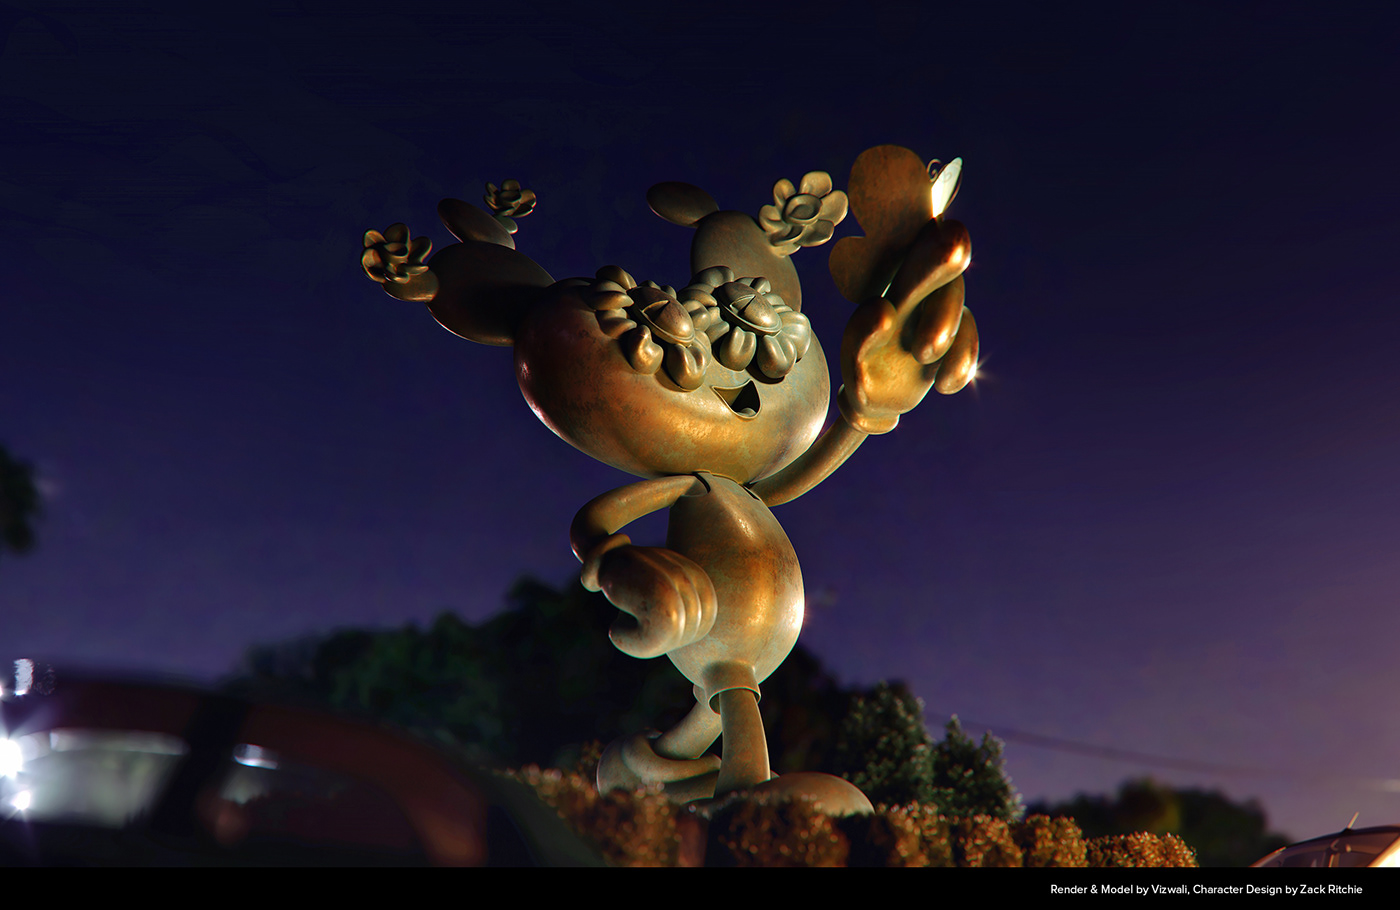 A night view close up of a 5 meter Bronze sculpture of a prickly pear character called Beppe.